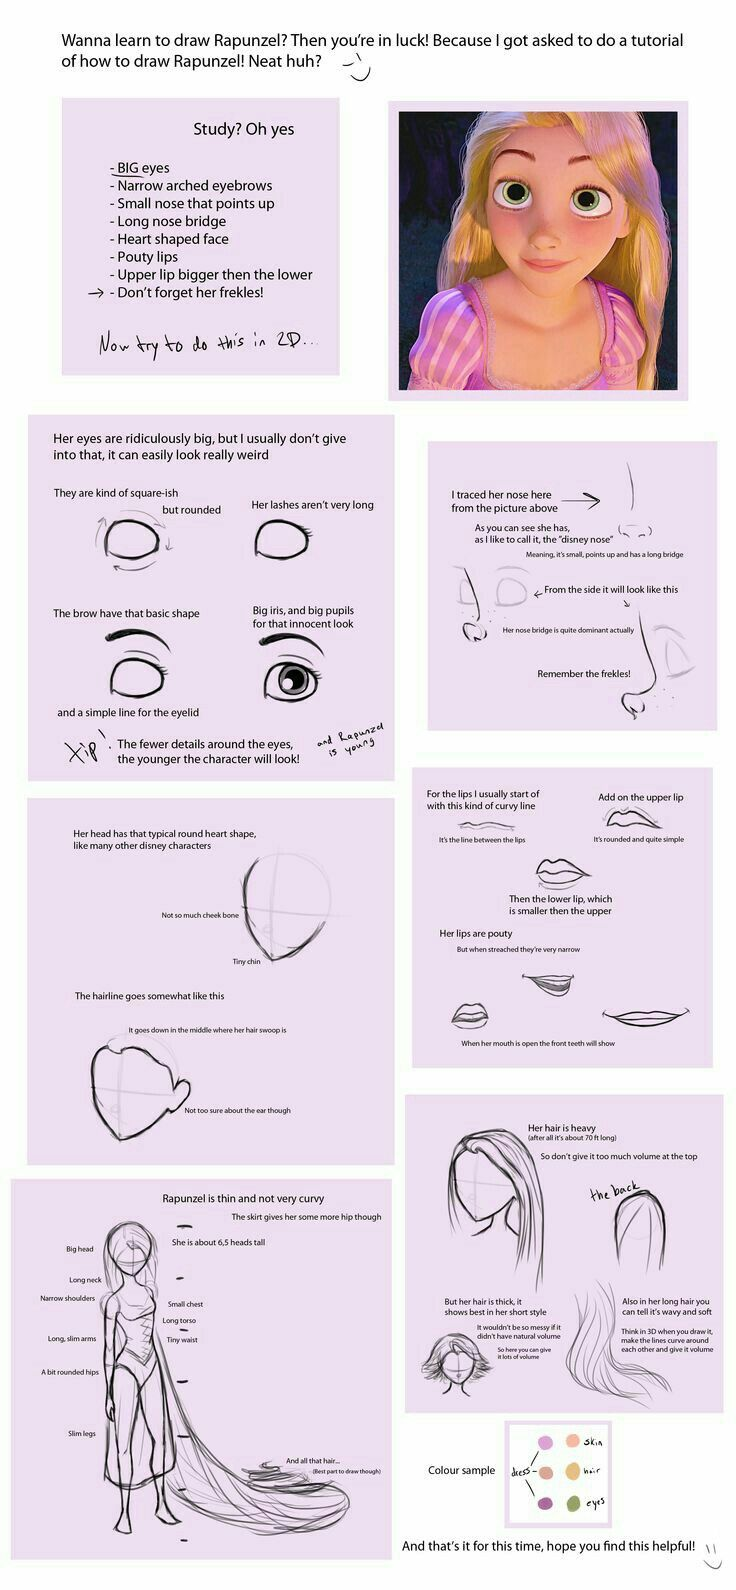 Steps to learn how to draw Rapunzel from Tangled